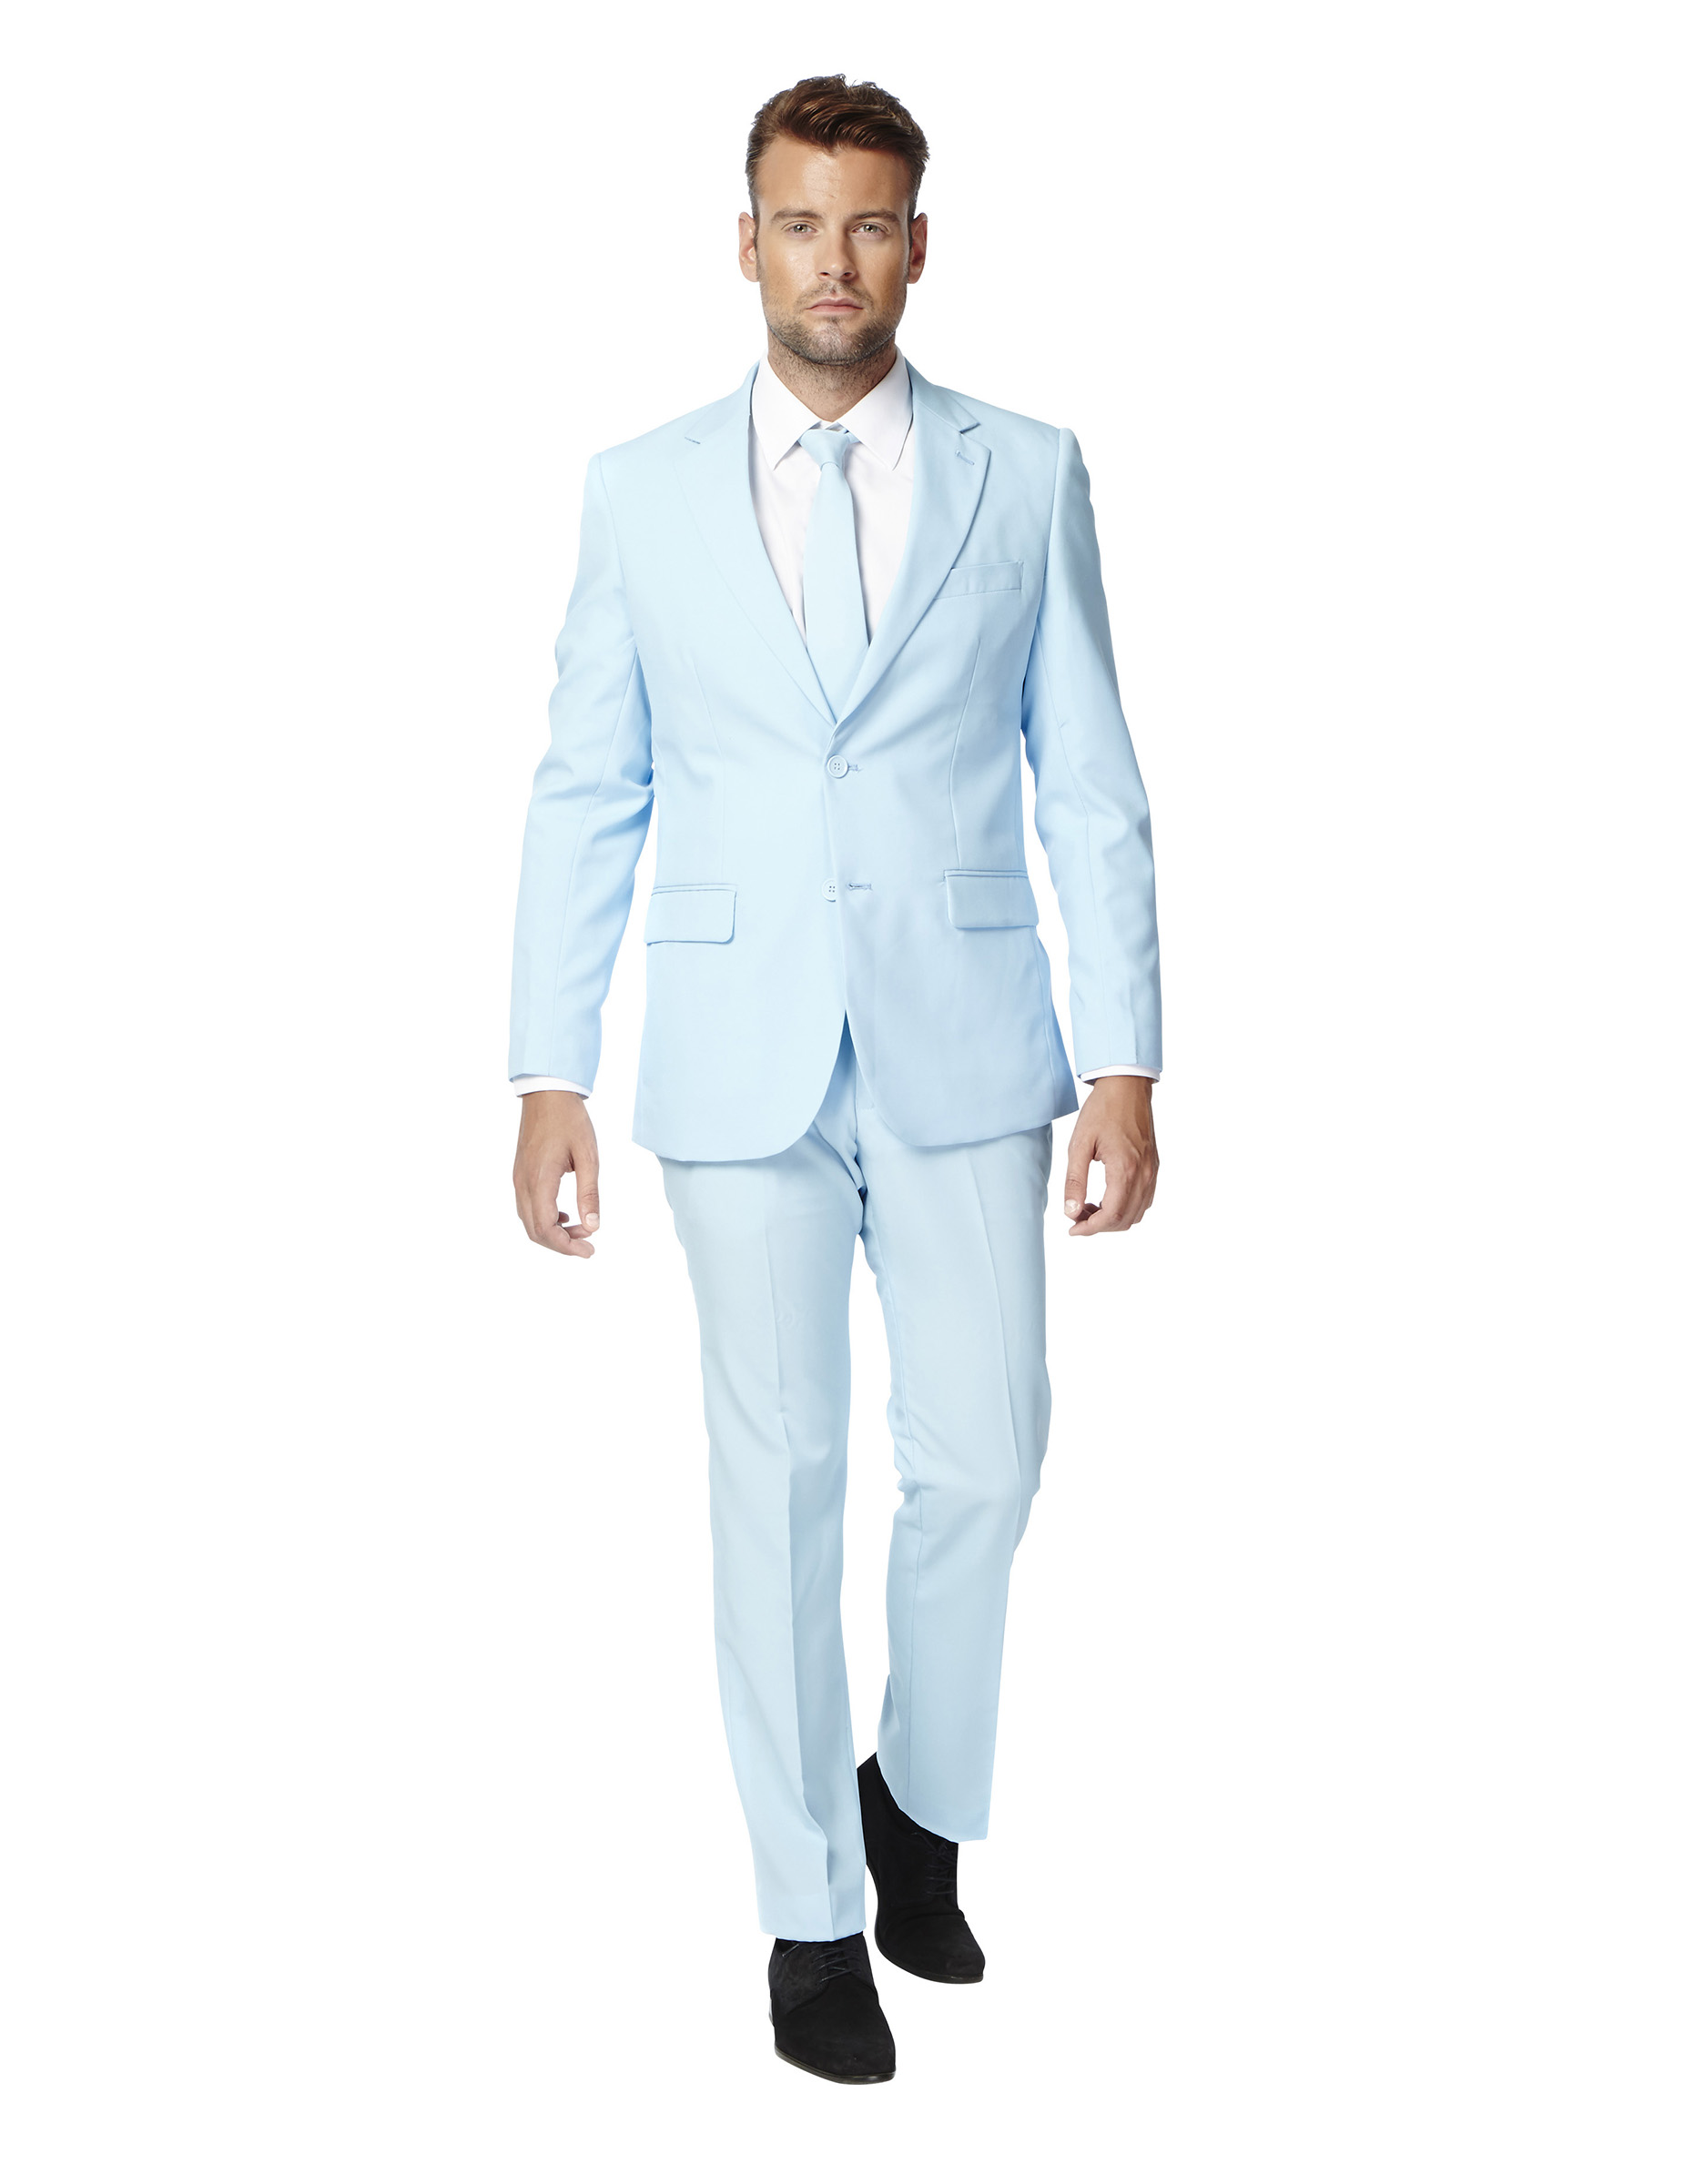 costume mr bleu ciel homme opposuits achat de d guisements adultes sur vegaoopro grossiste. Black Bedroom Furniture Sets. Home Design Ideas